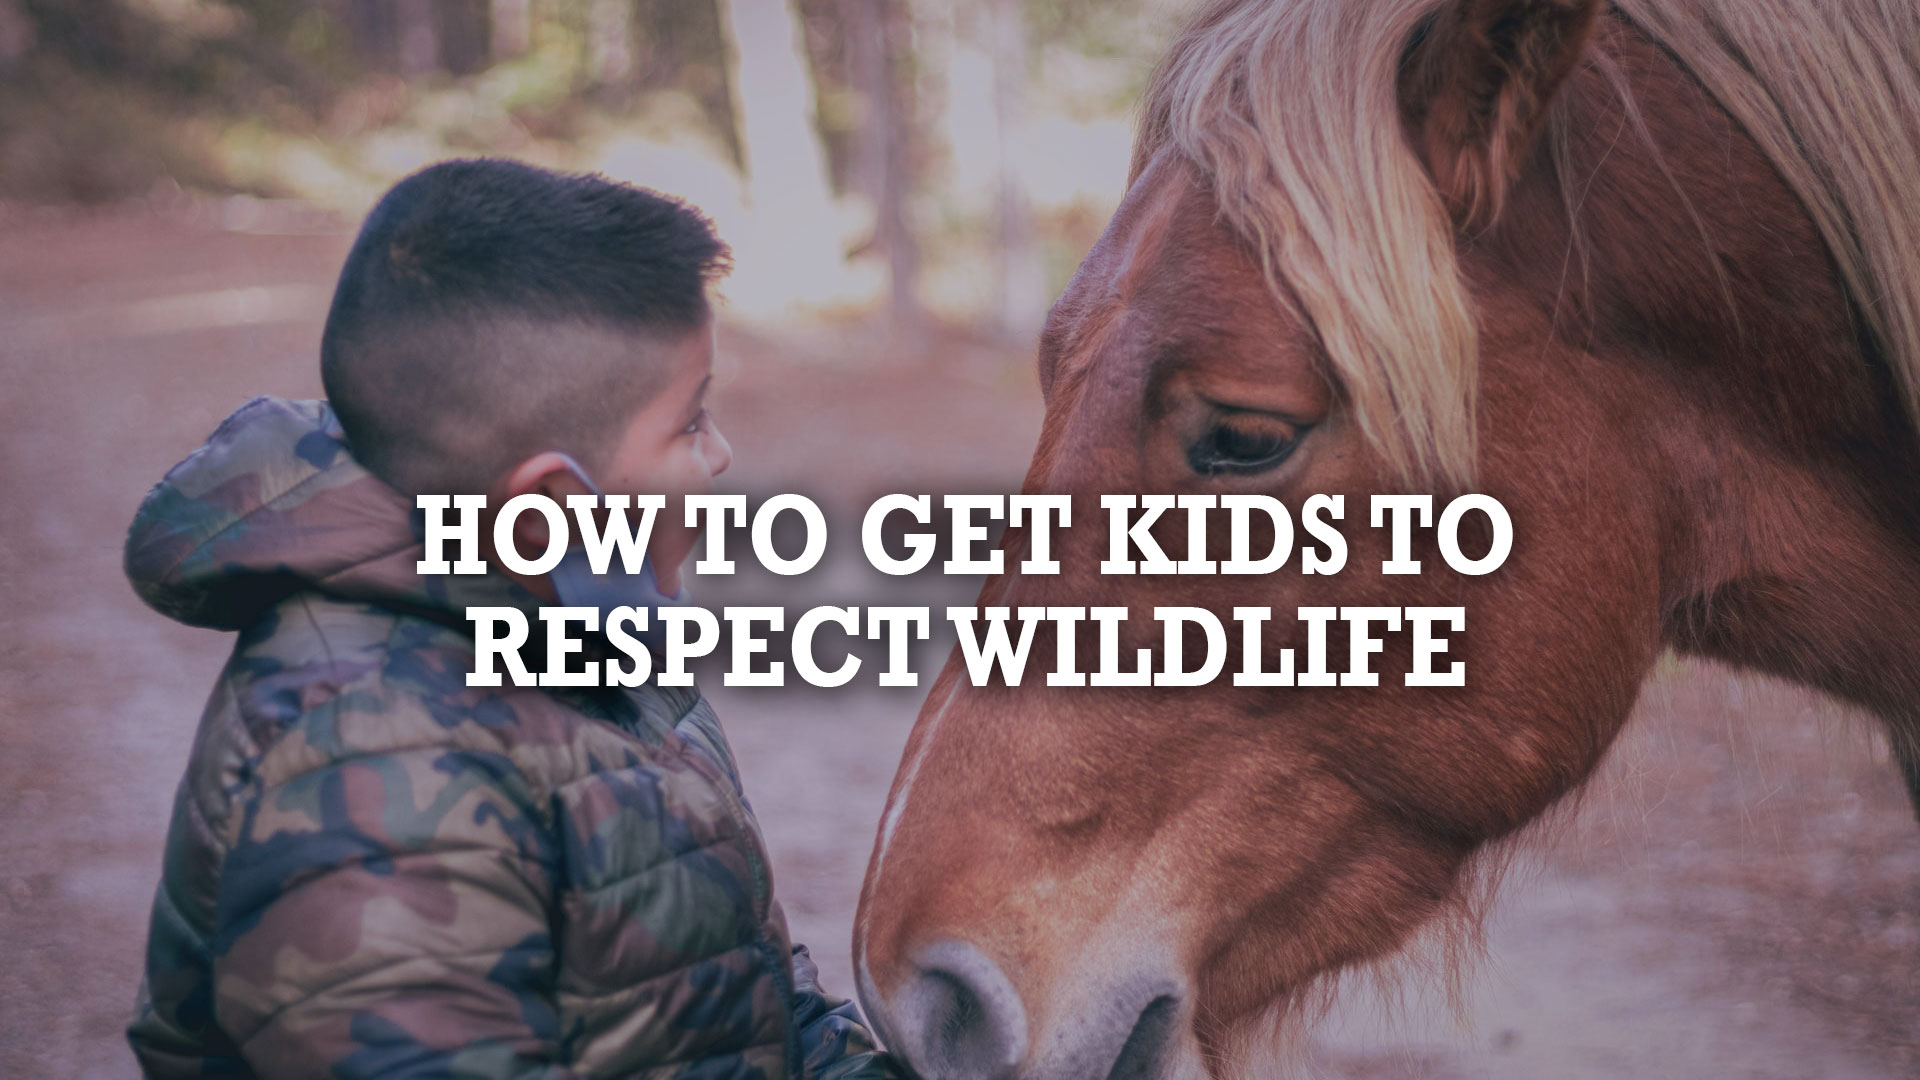 How To Get Kids To Respect Wildlife